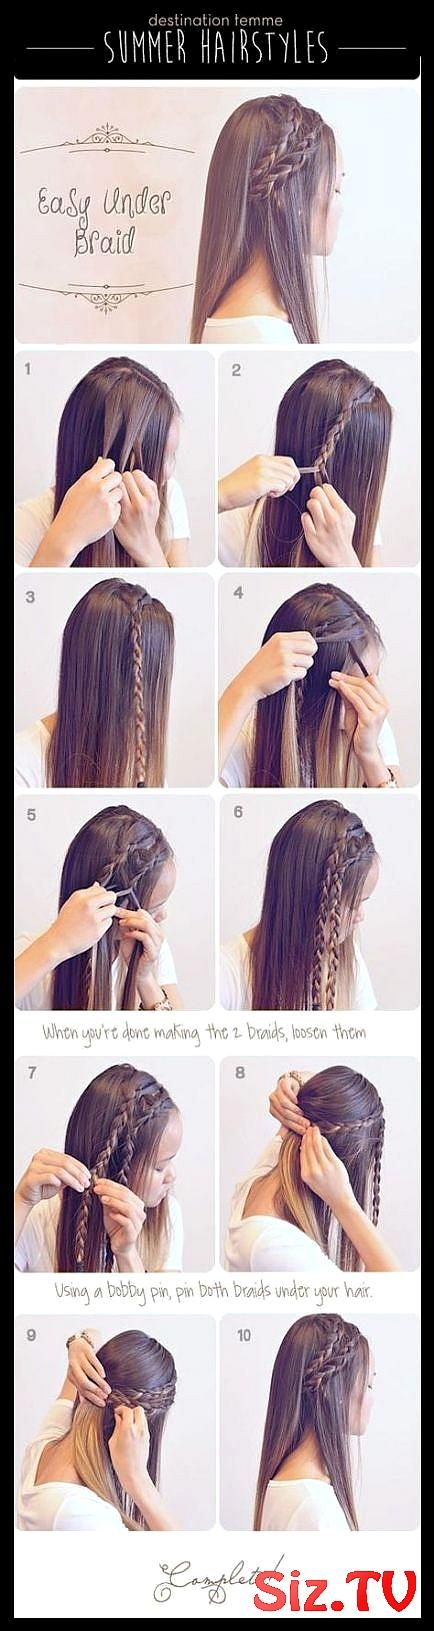 Super Braids Hairstyles For Long Hair Half Up Pony Tails Ideas Super Braids Hairstyles For Long Hair Half Up Pony Tails Ideas Hair Hairstyles Braids #...